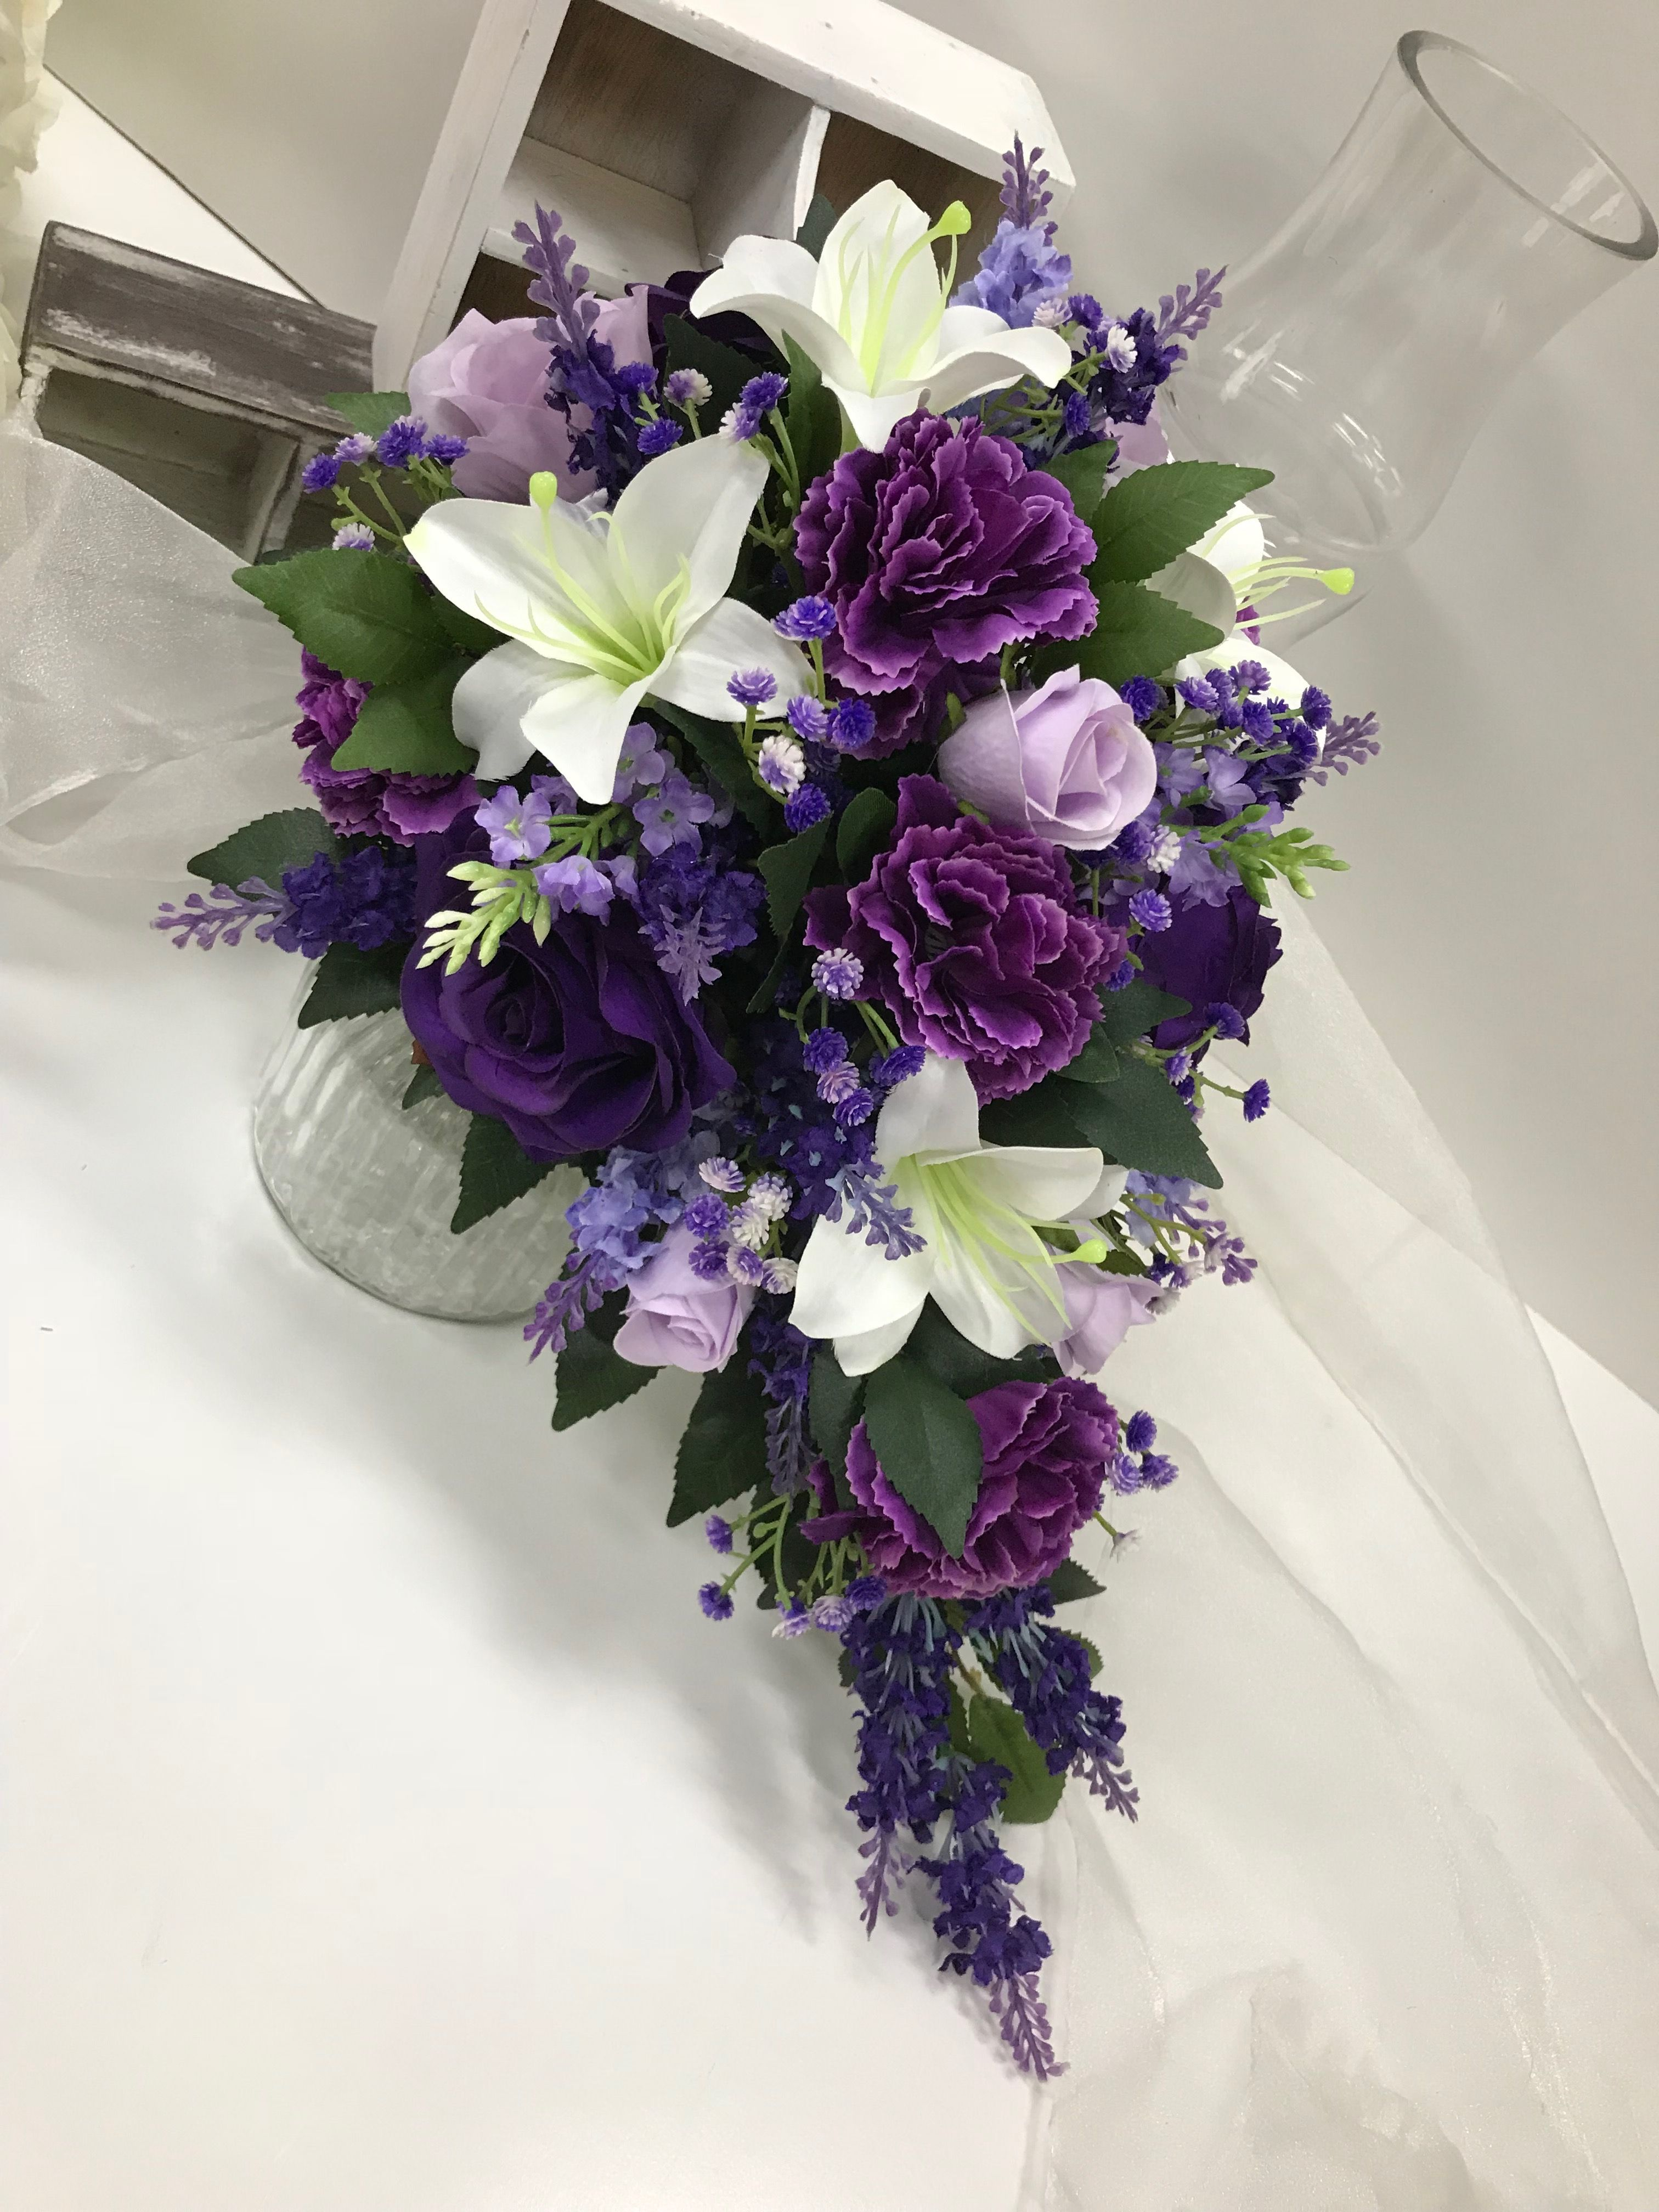 Deep Purple Roses Lavenders White Lilies Lavender Roses With